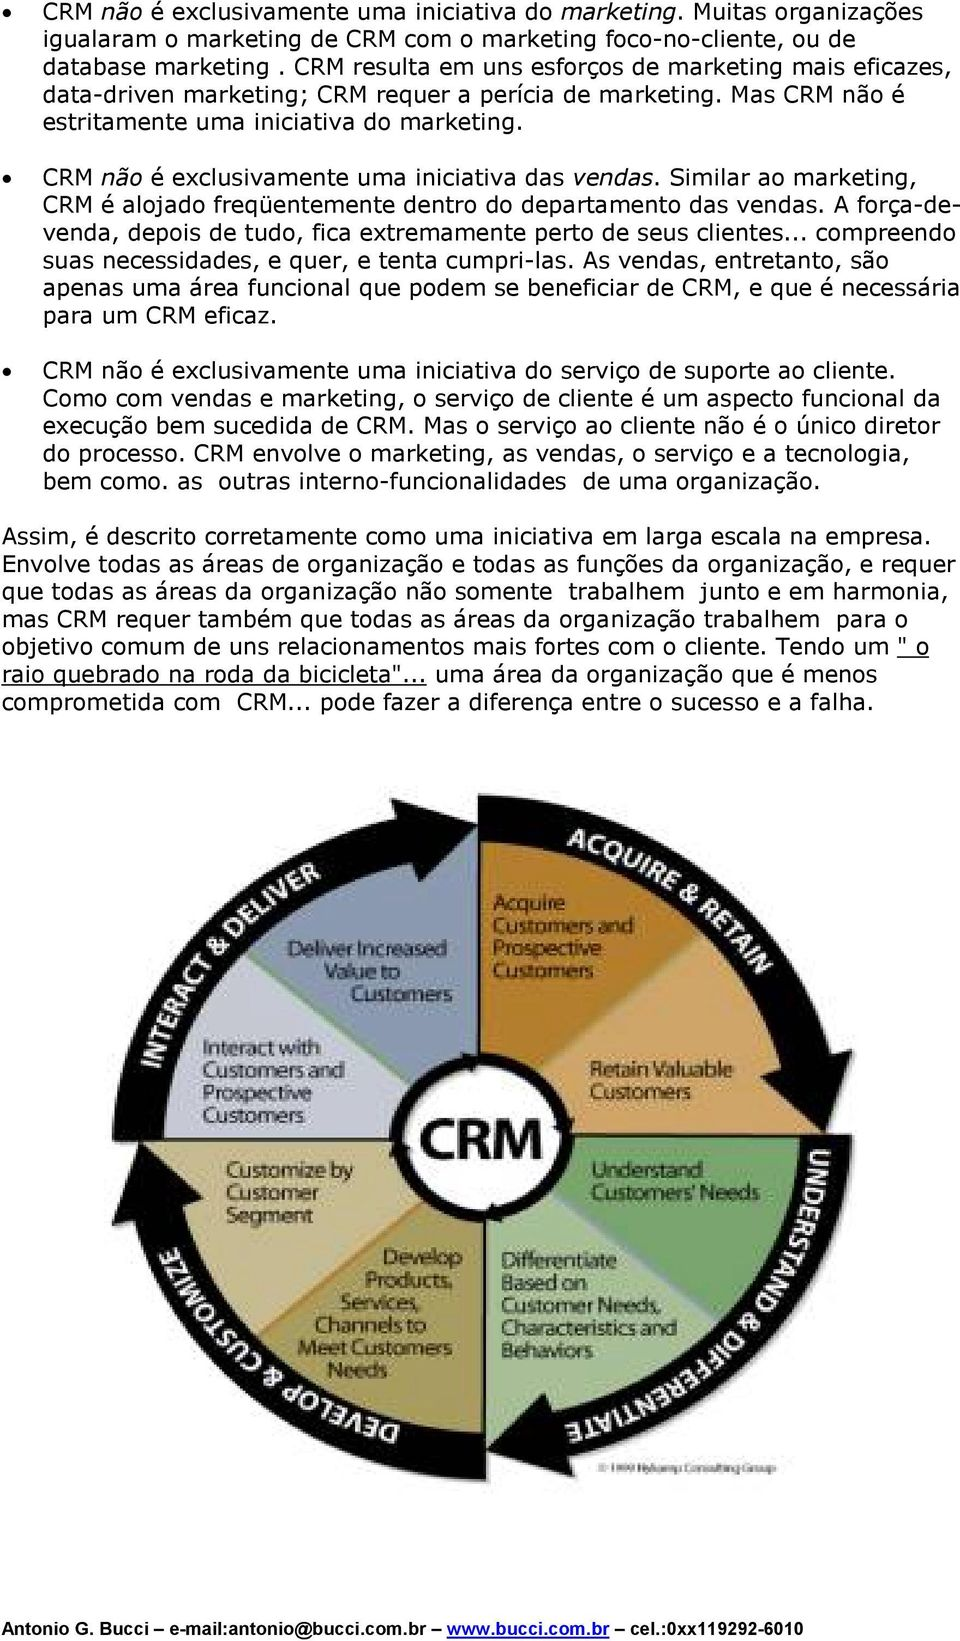 CRM não é exclusivamente uma iniciativa das vendas. Similar ao marketing, CRM é alojado freqüentemente dentro do departamento das vendas.